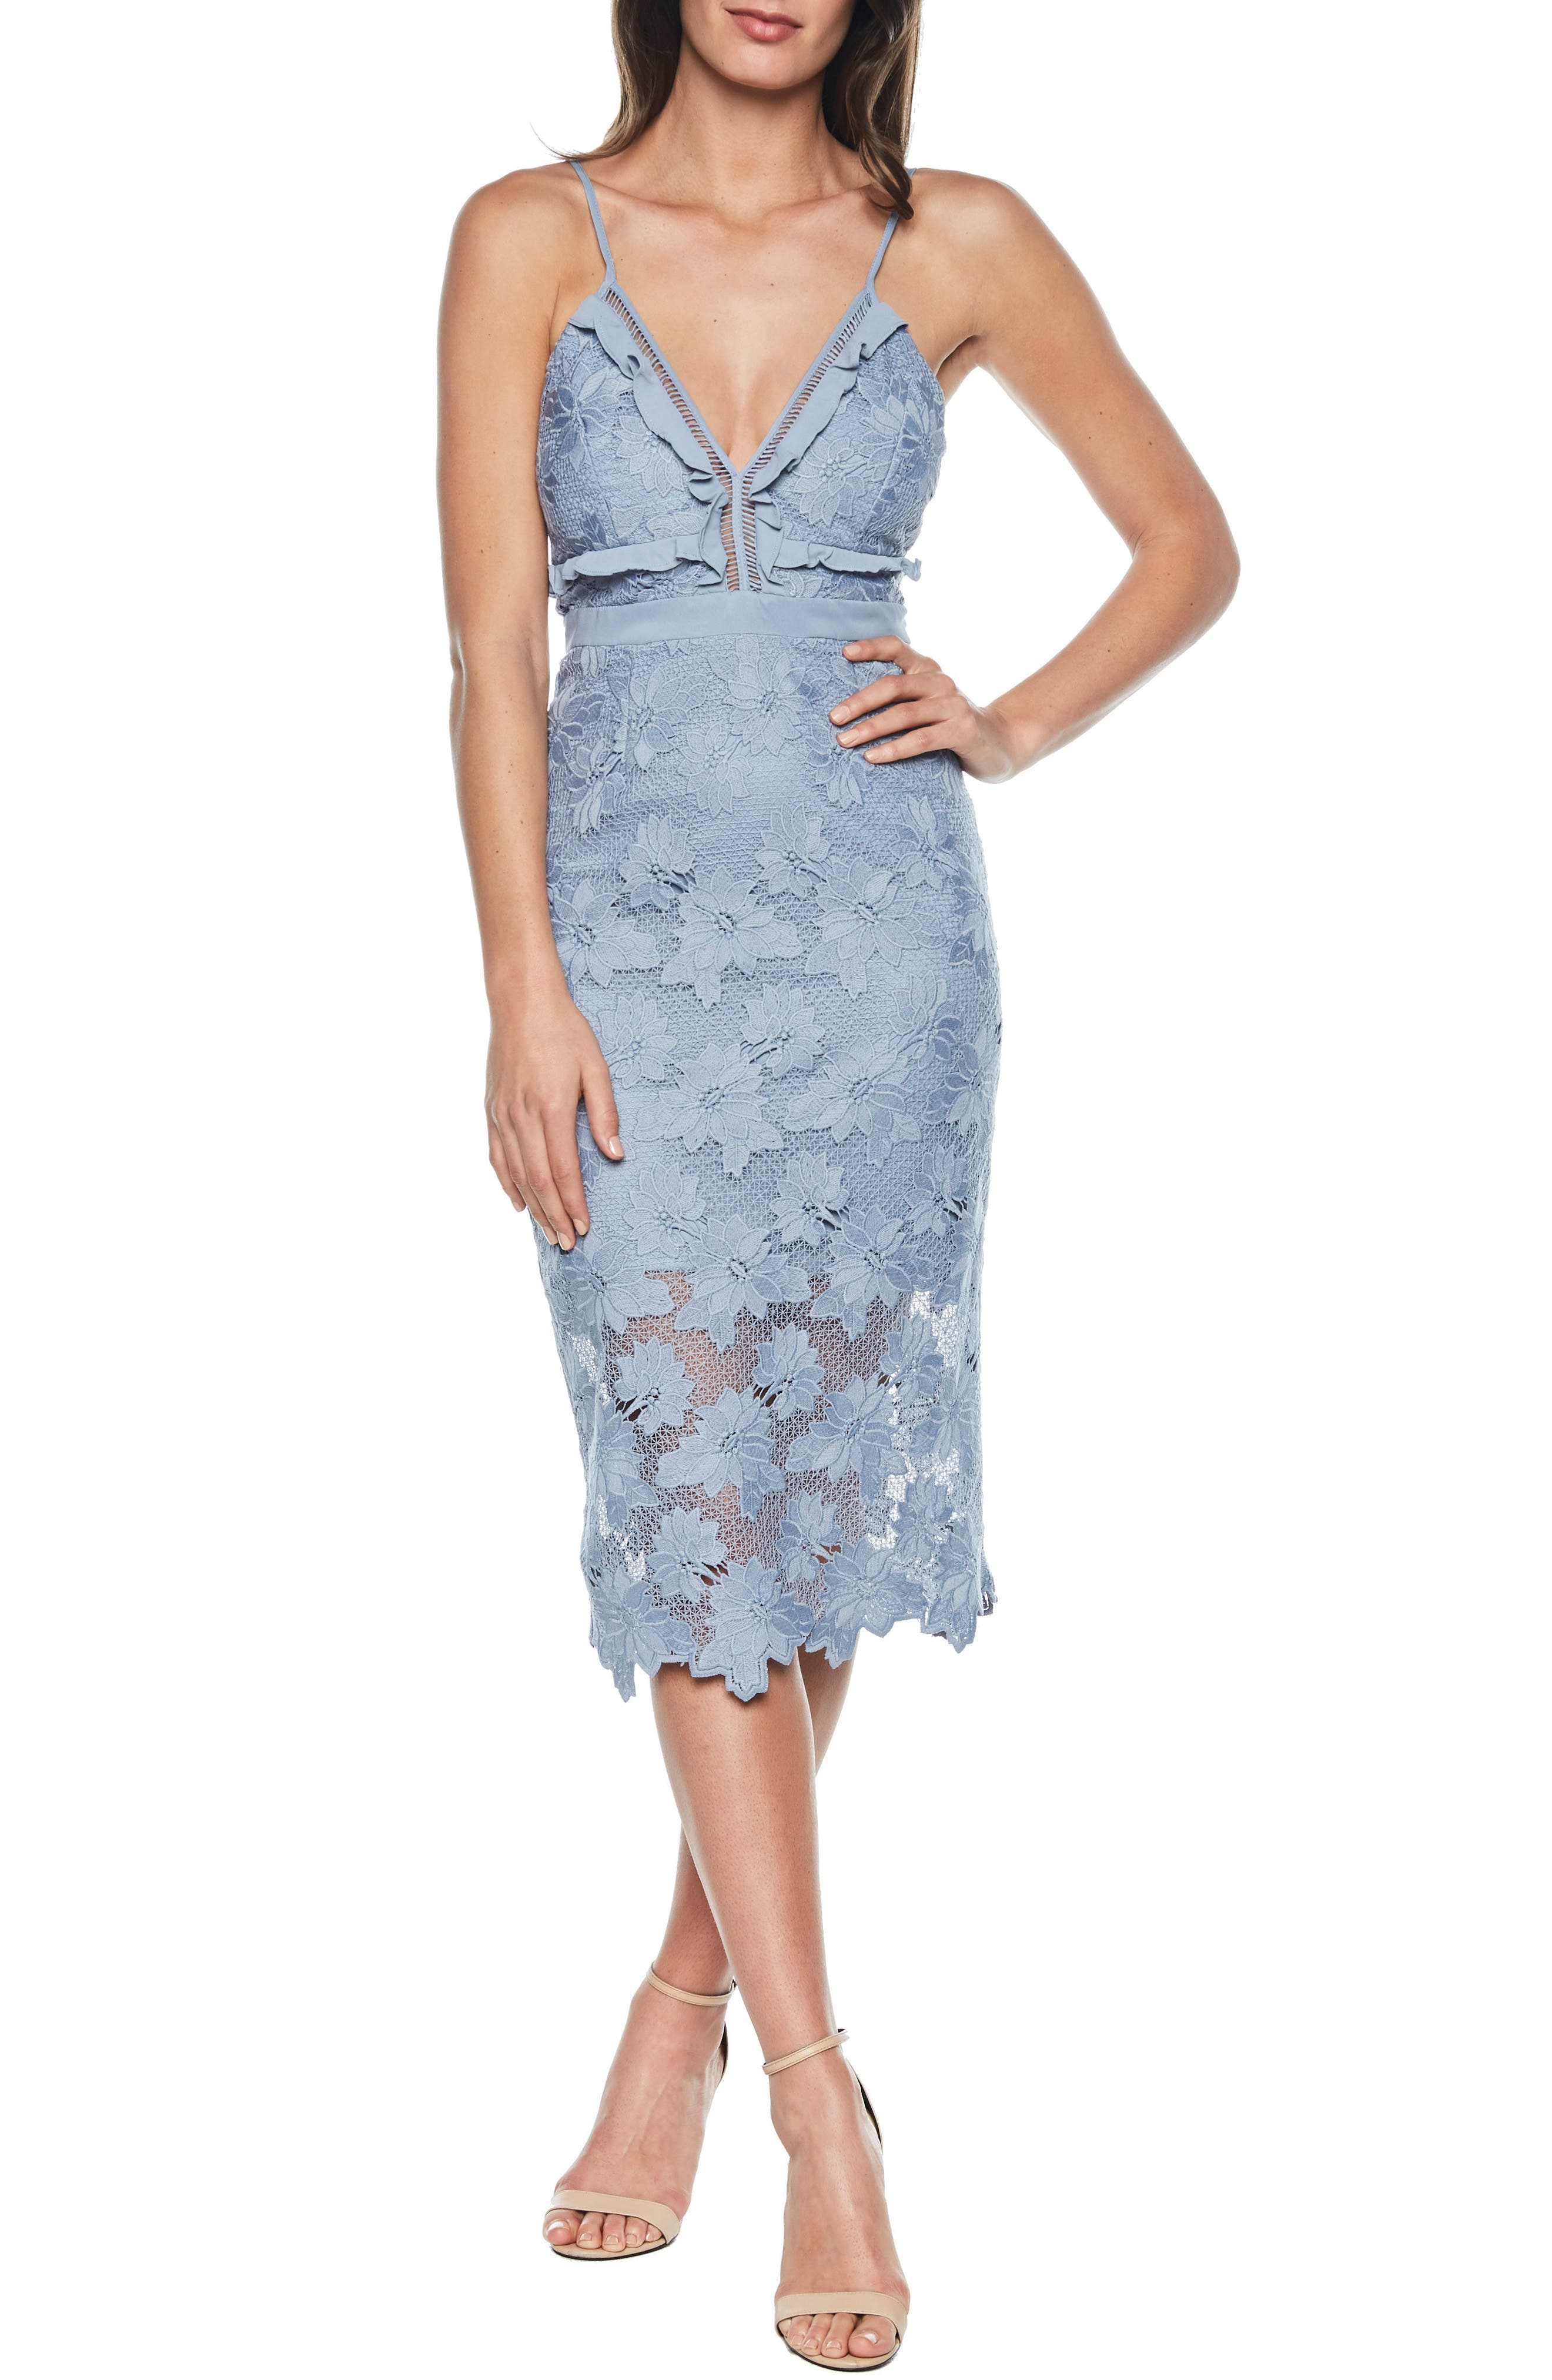 Vienna Lace Overlay Dress,                             Main thumbnail 1, color,                             DUSTY BLUE